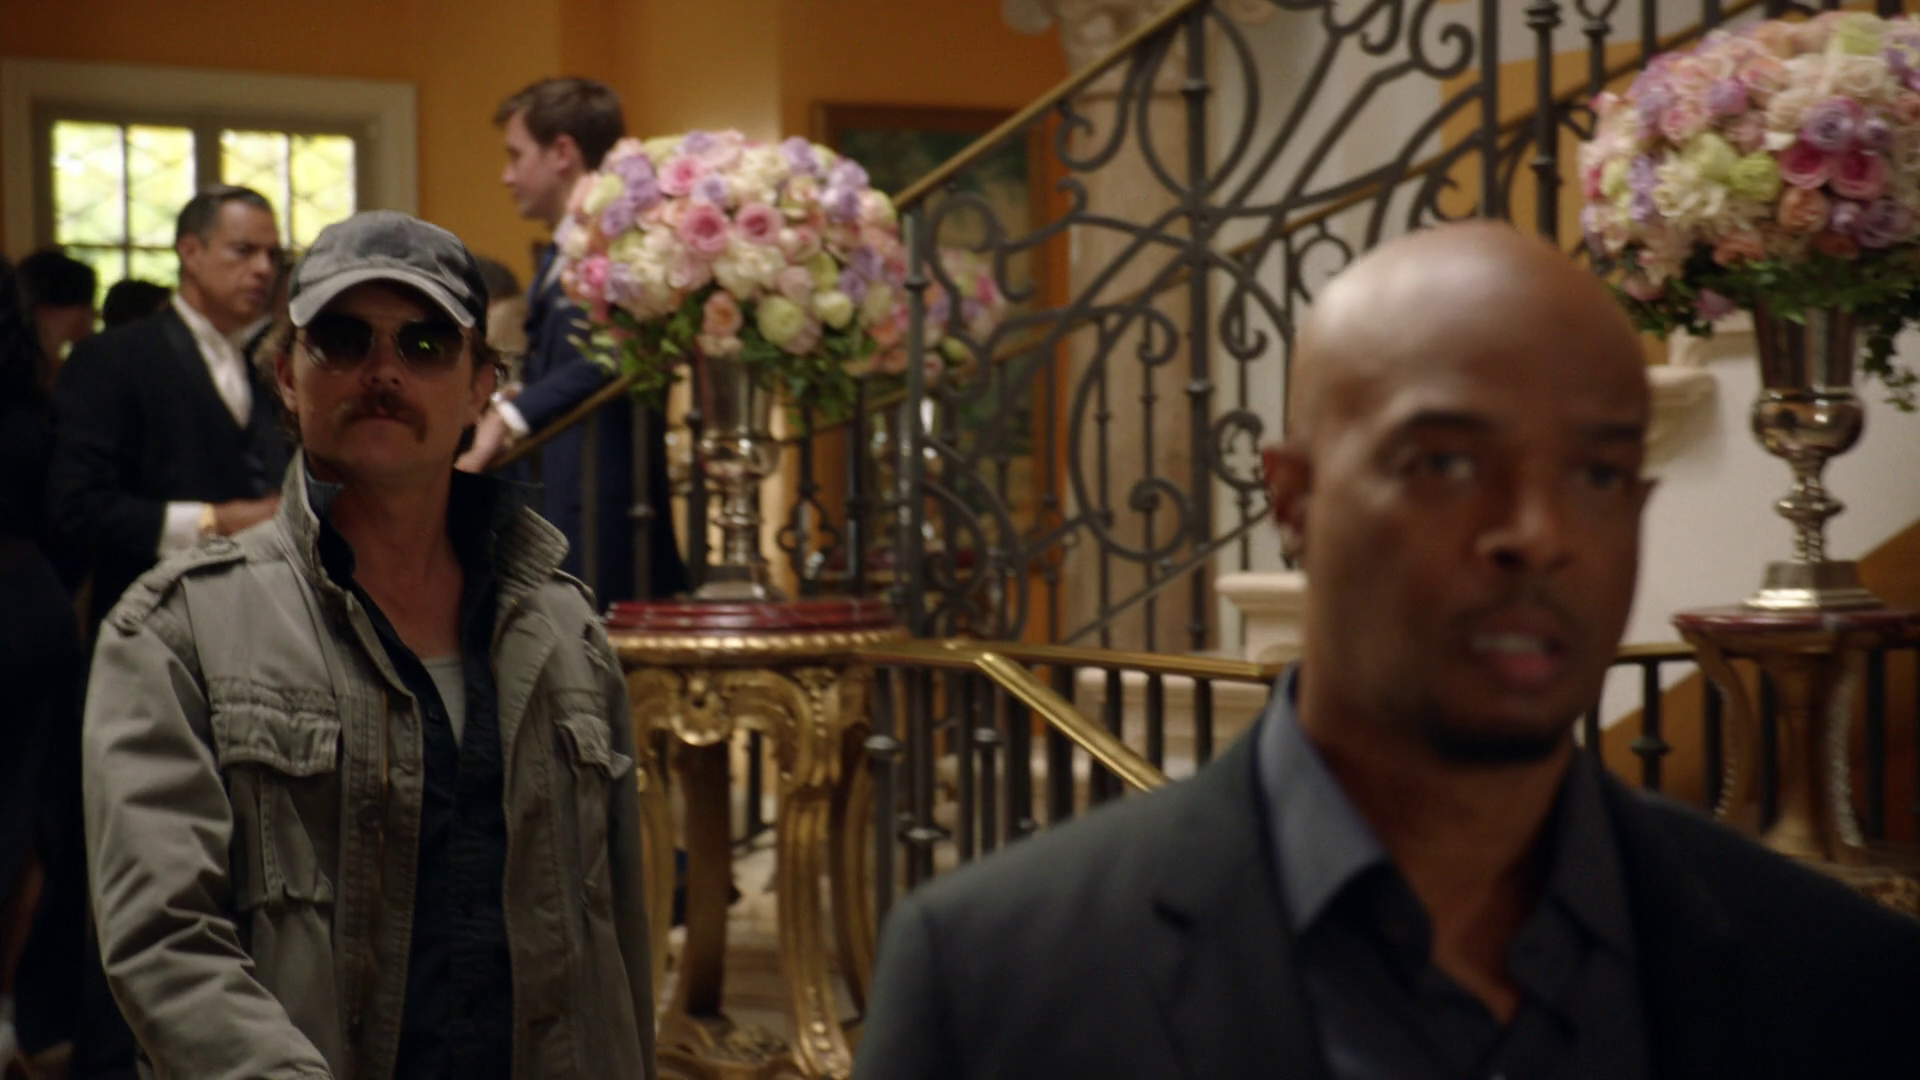 lethal weapon s02e22 1080p BluRay DTS x264-rovers